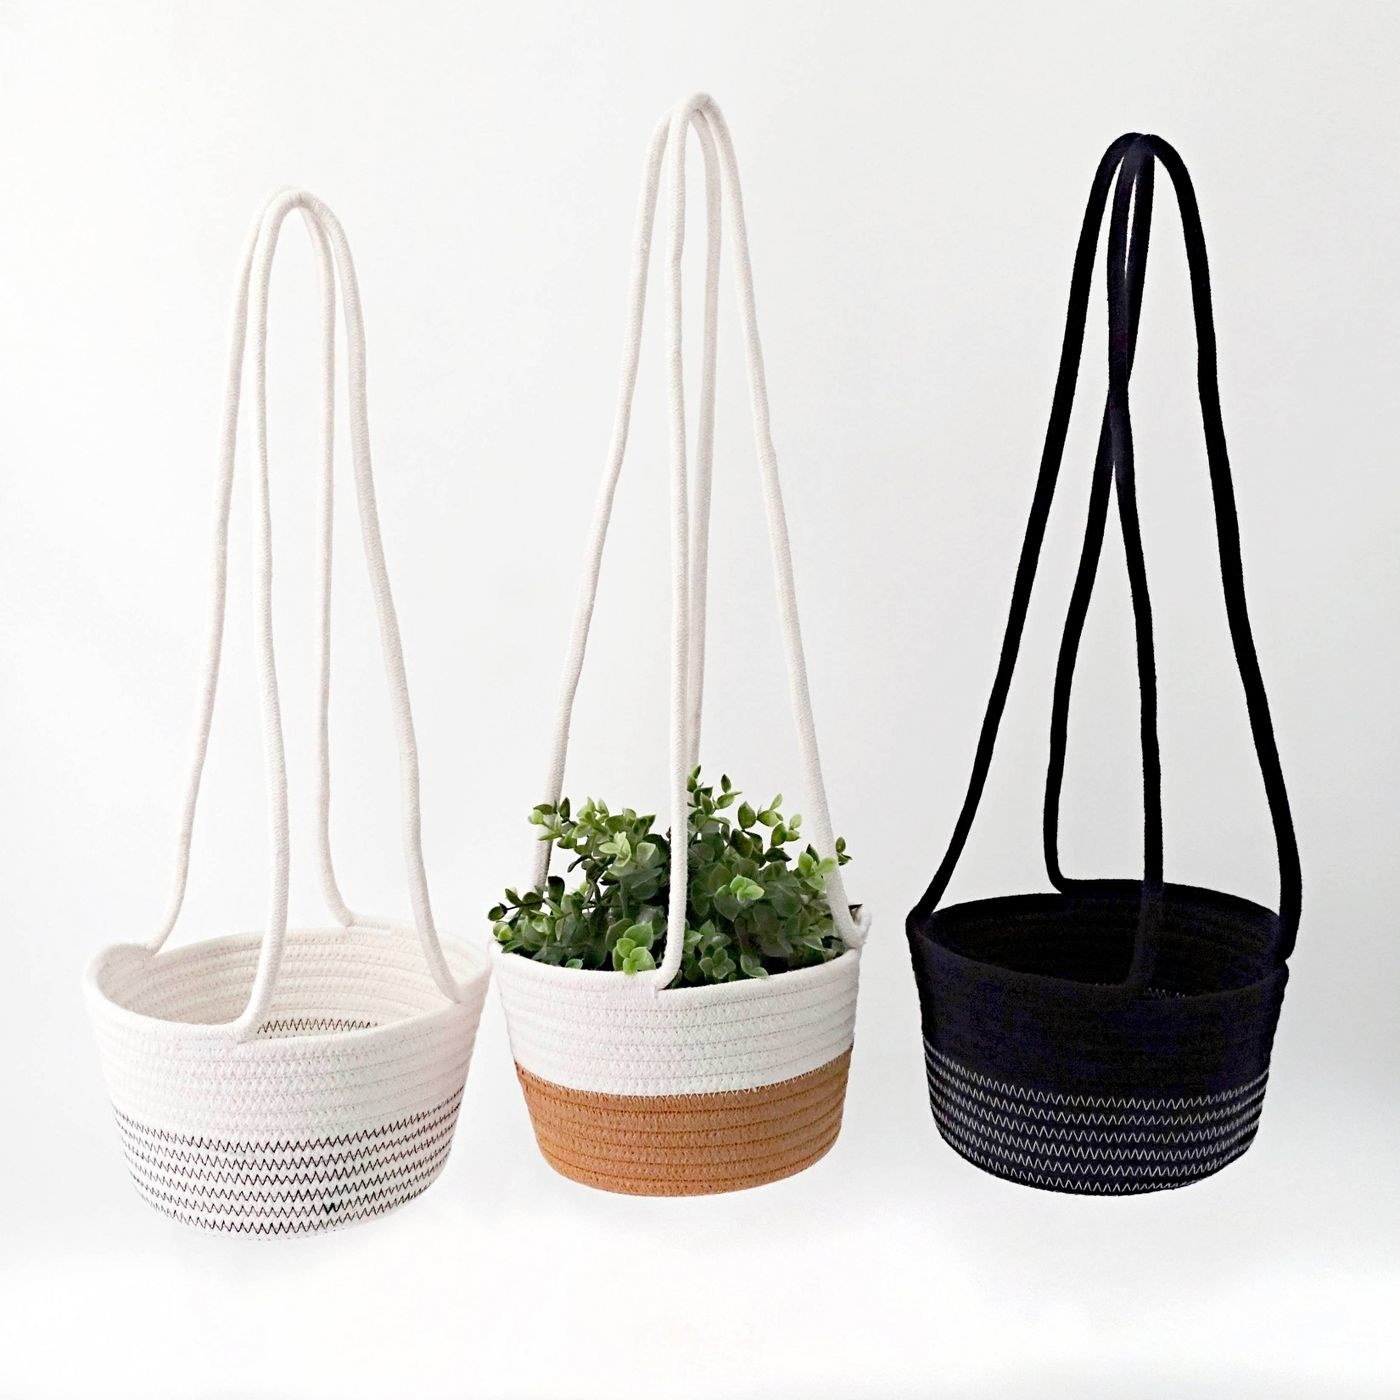 A white, tan/white and black hanging basket for your plants